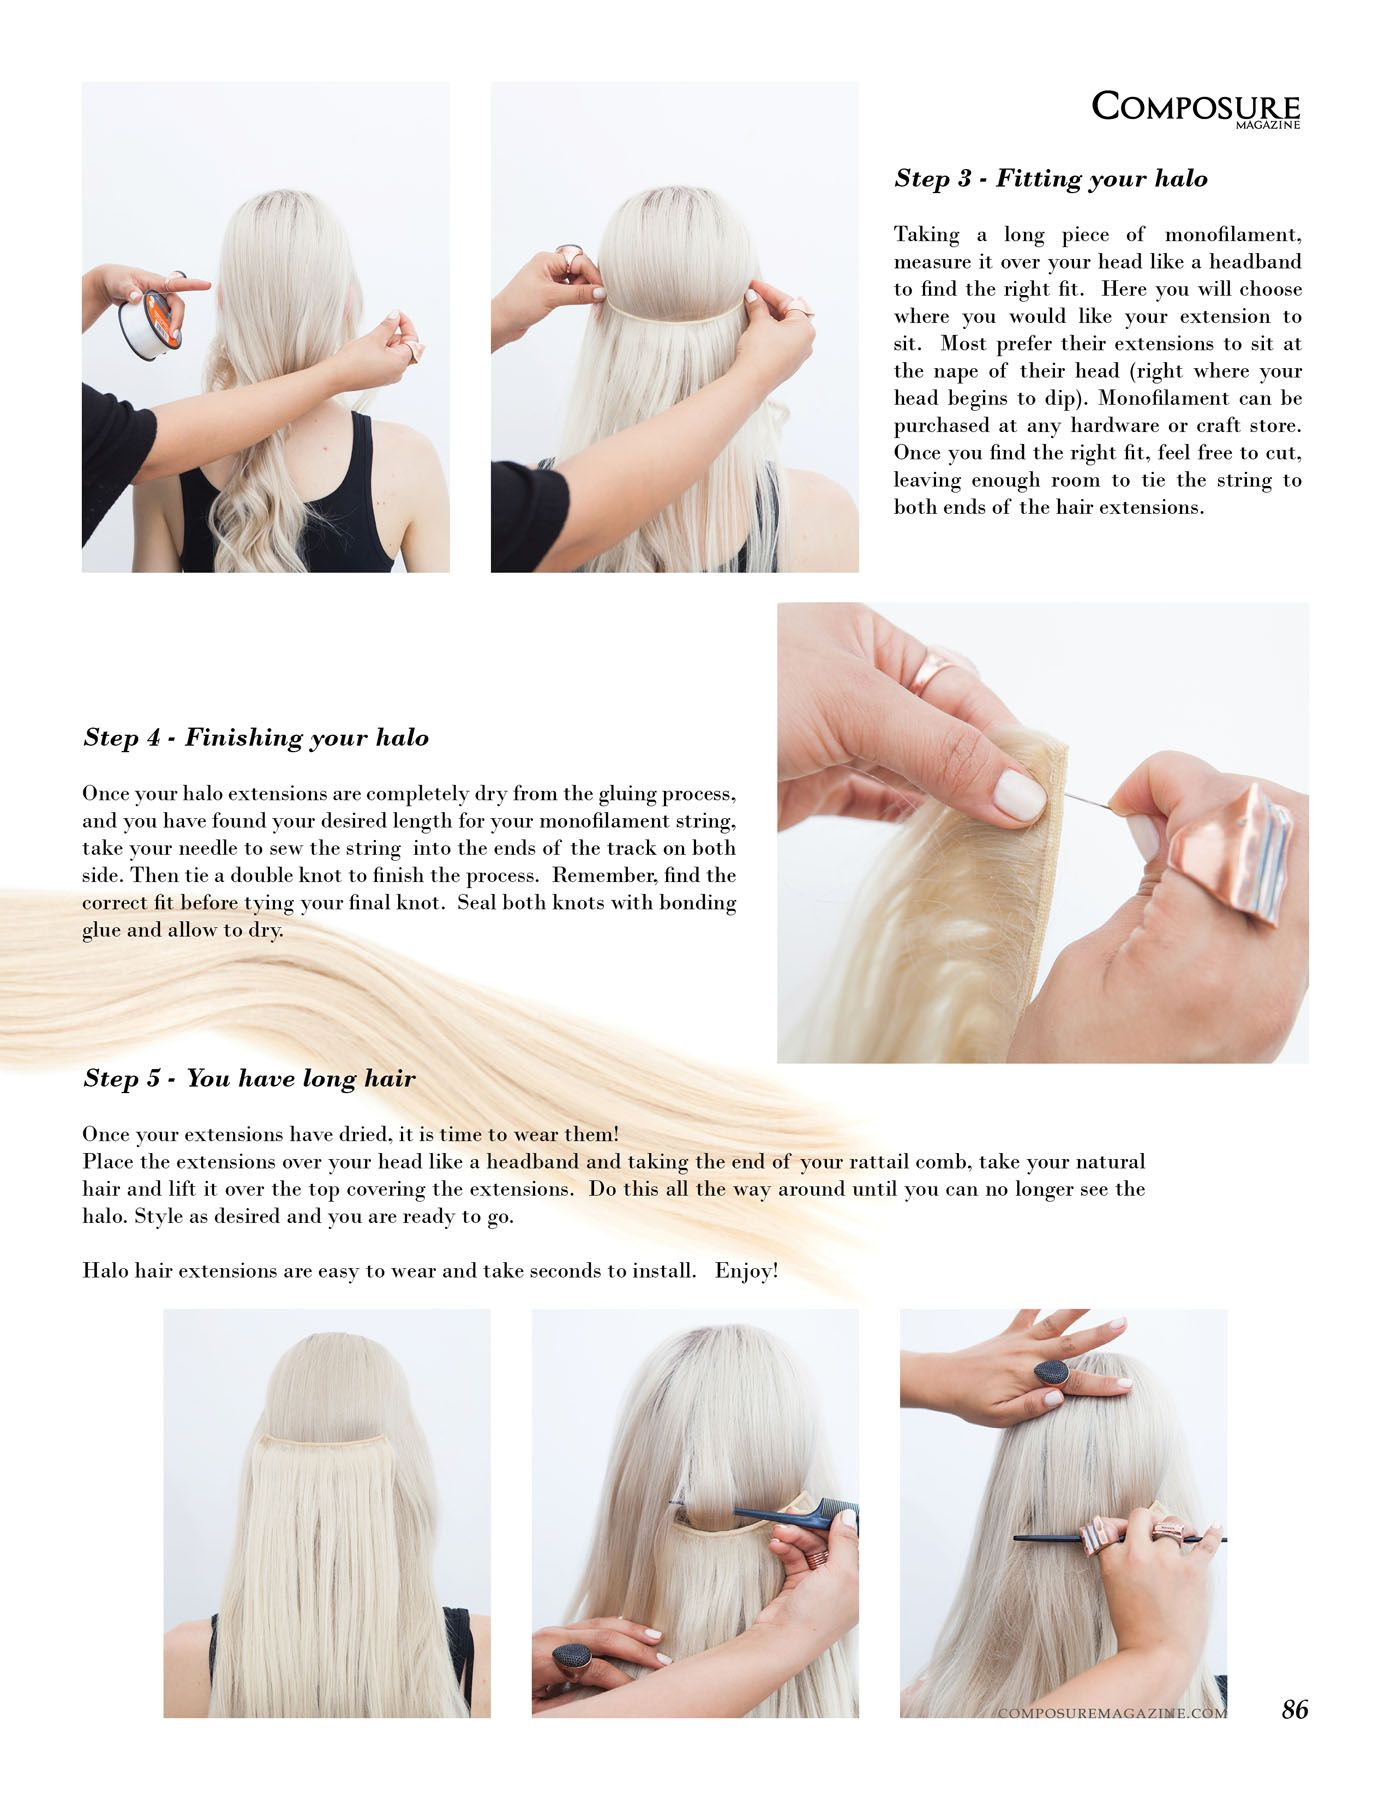 How To Guide For Halo Hair Extensions Hair Pinterest Halo Hair